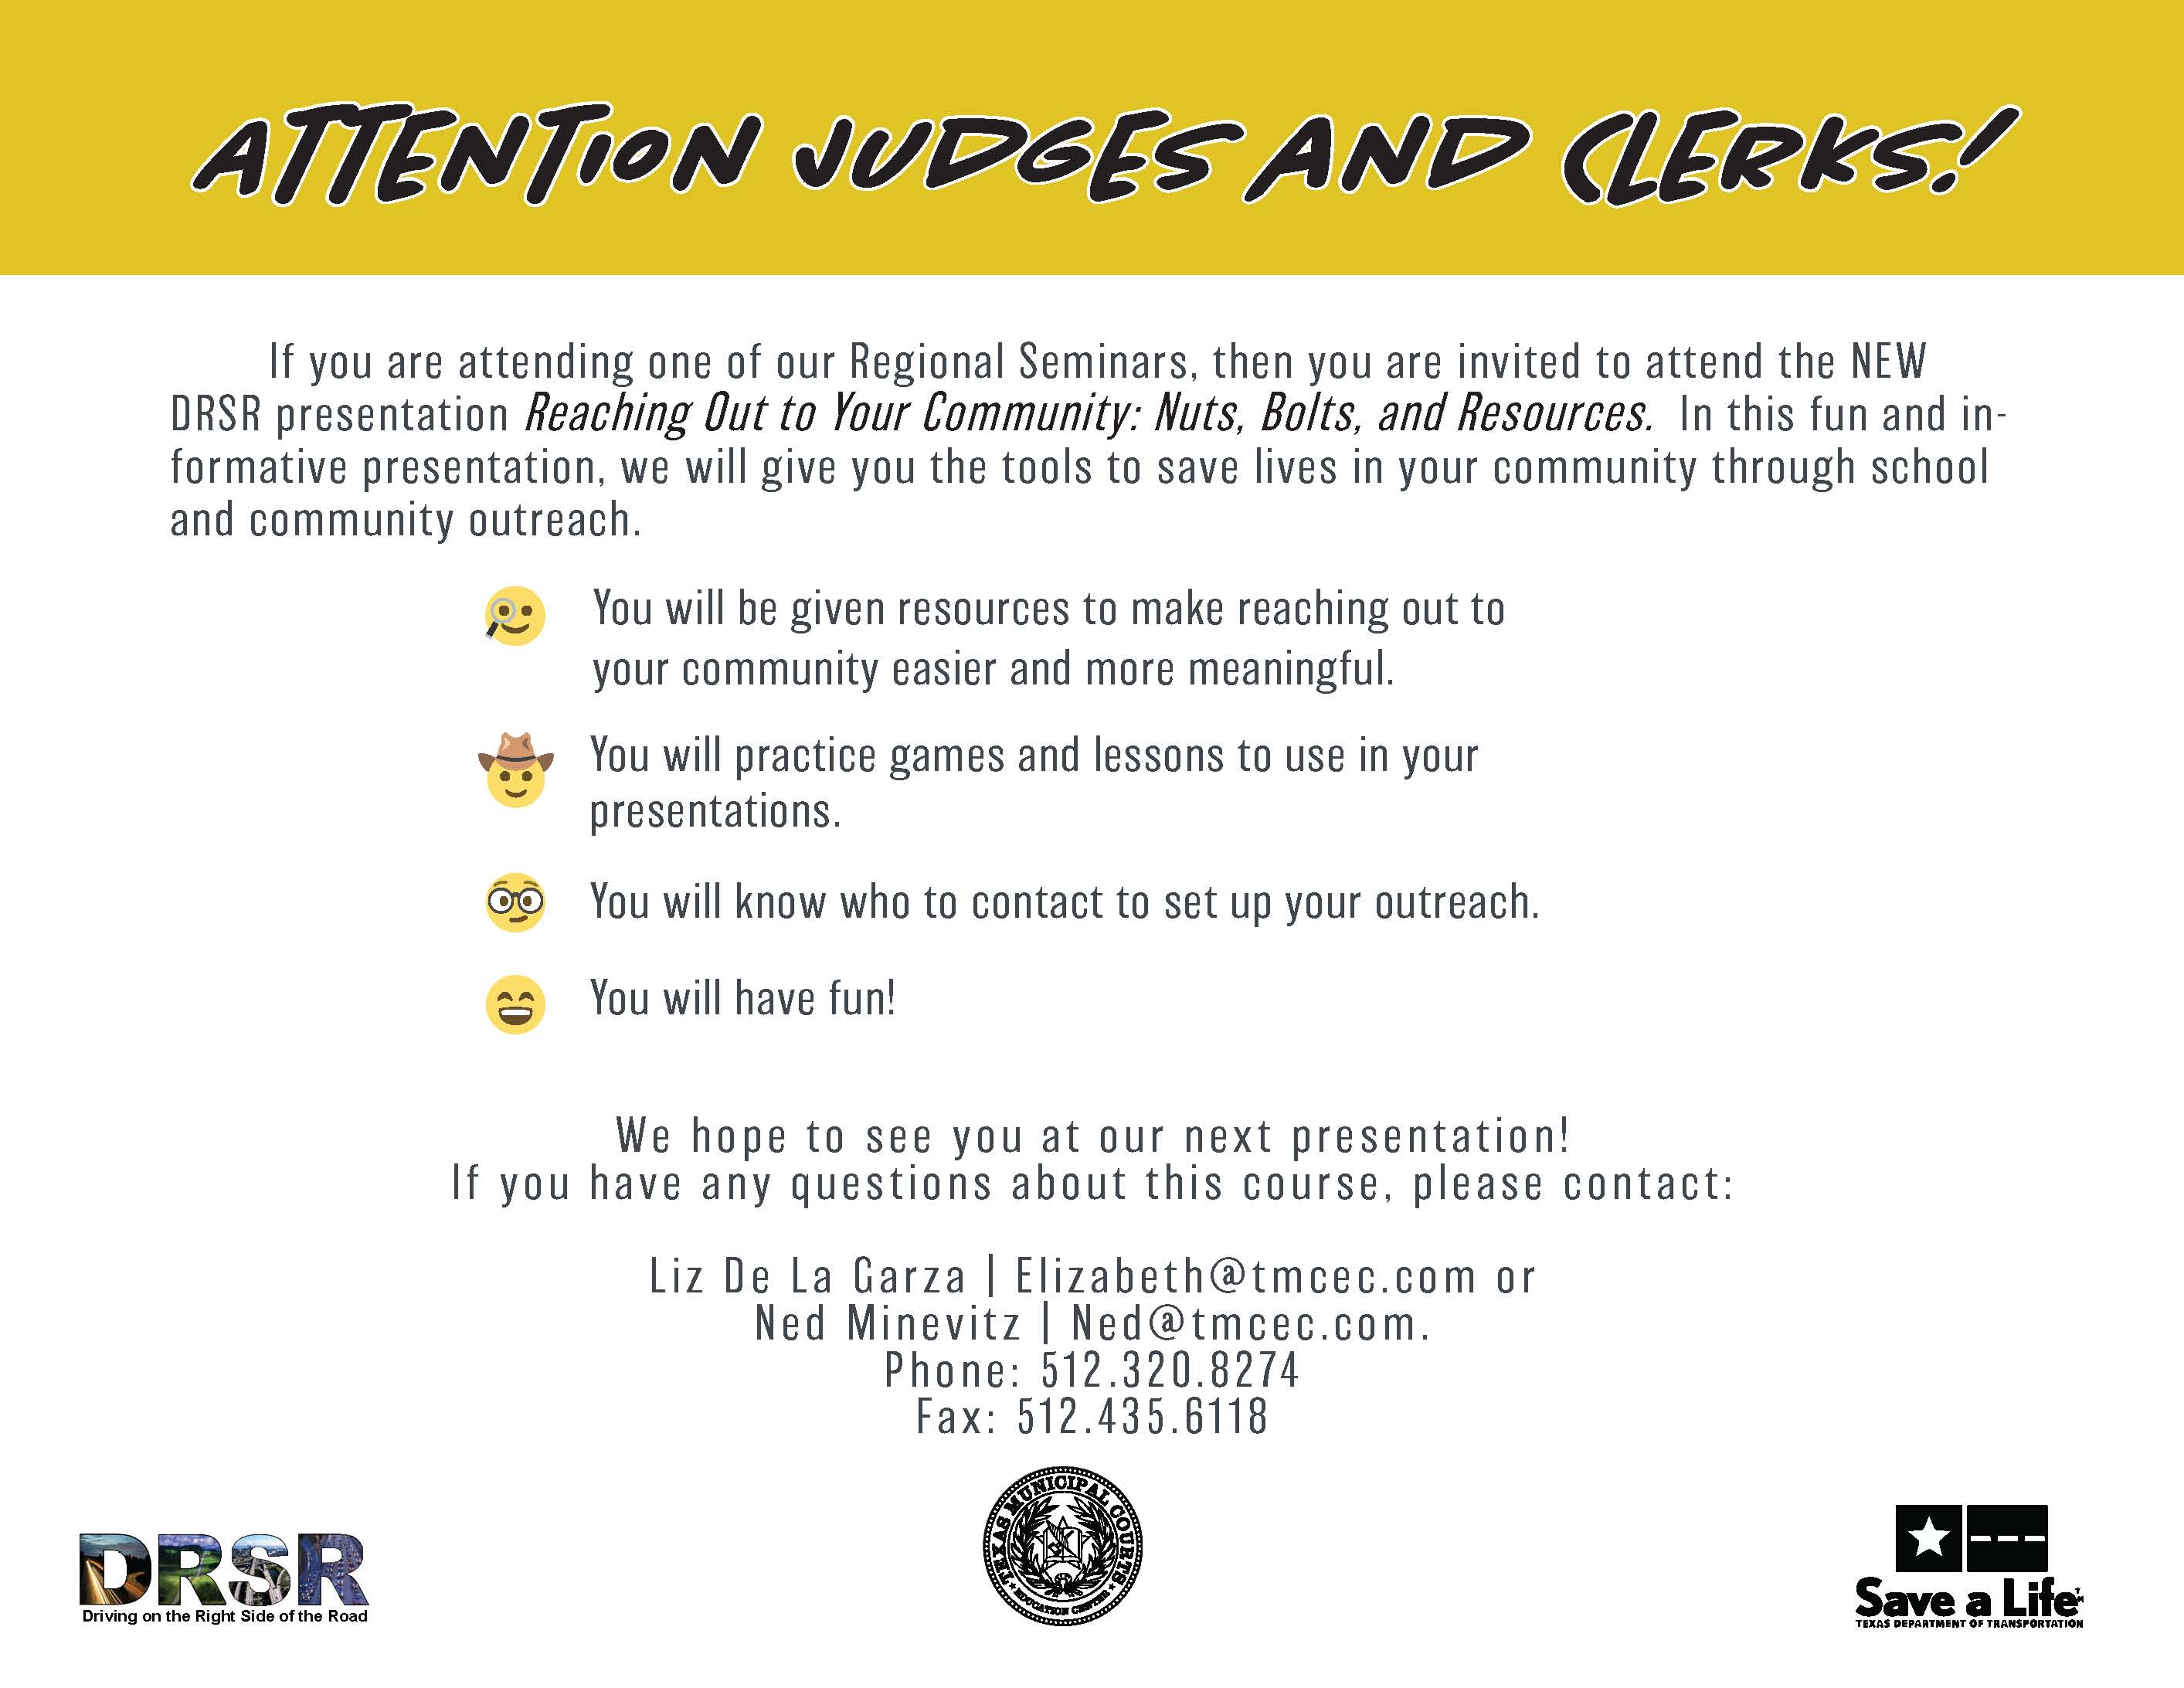 FY18 Judges Clerks Flier.jpg